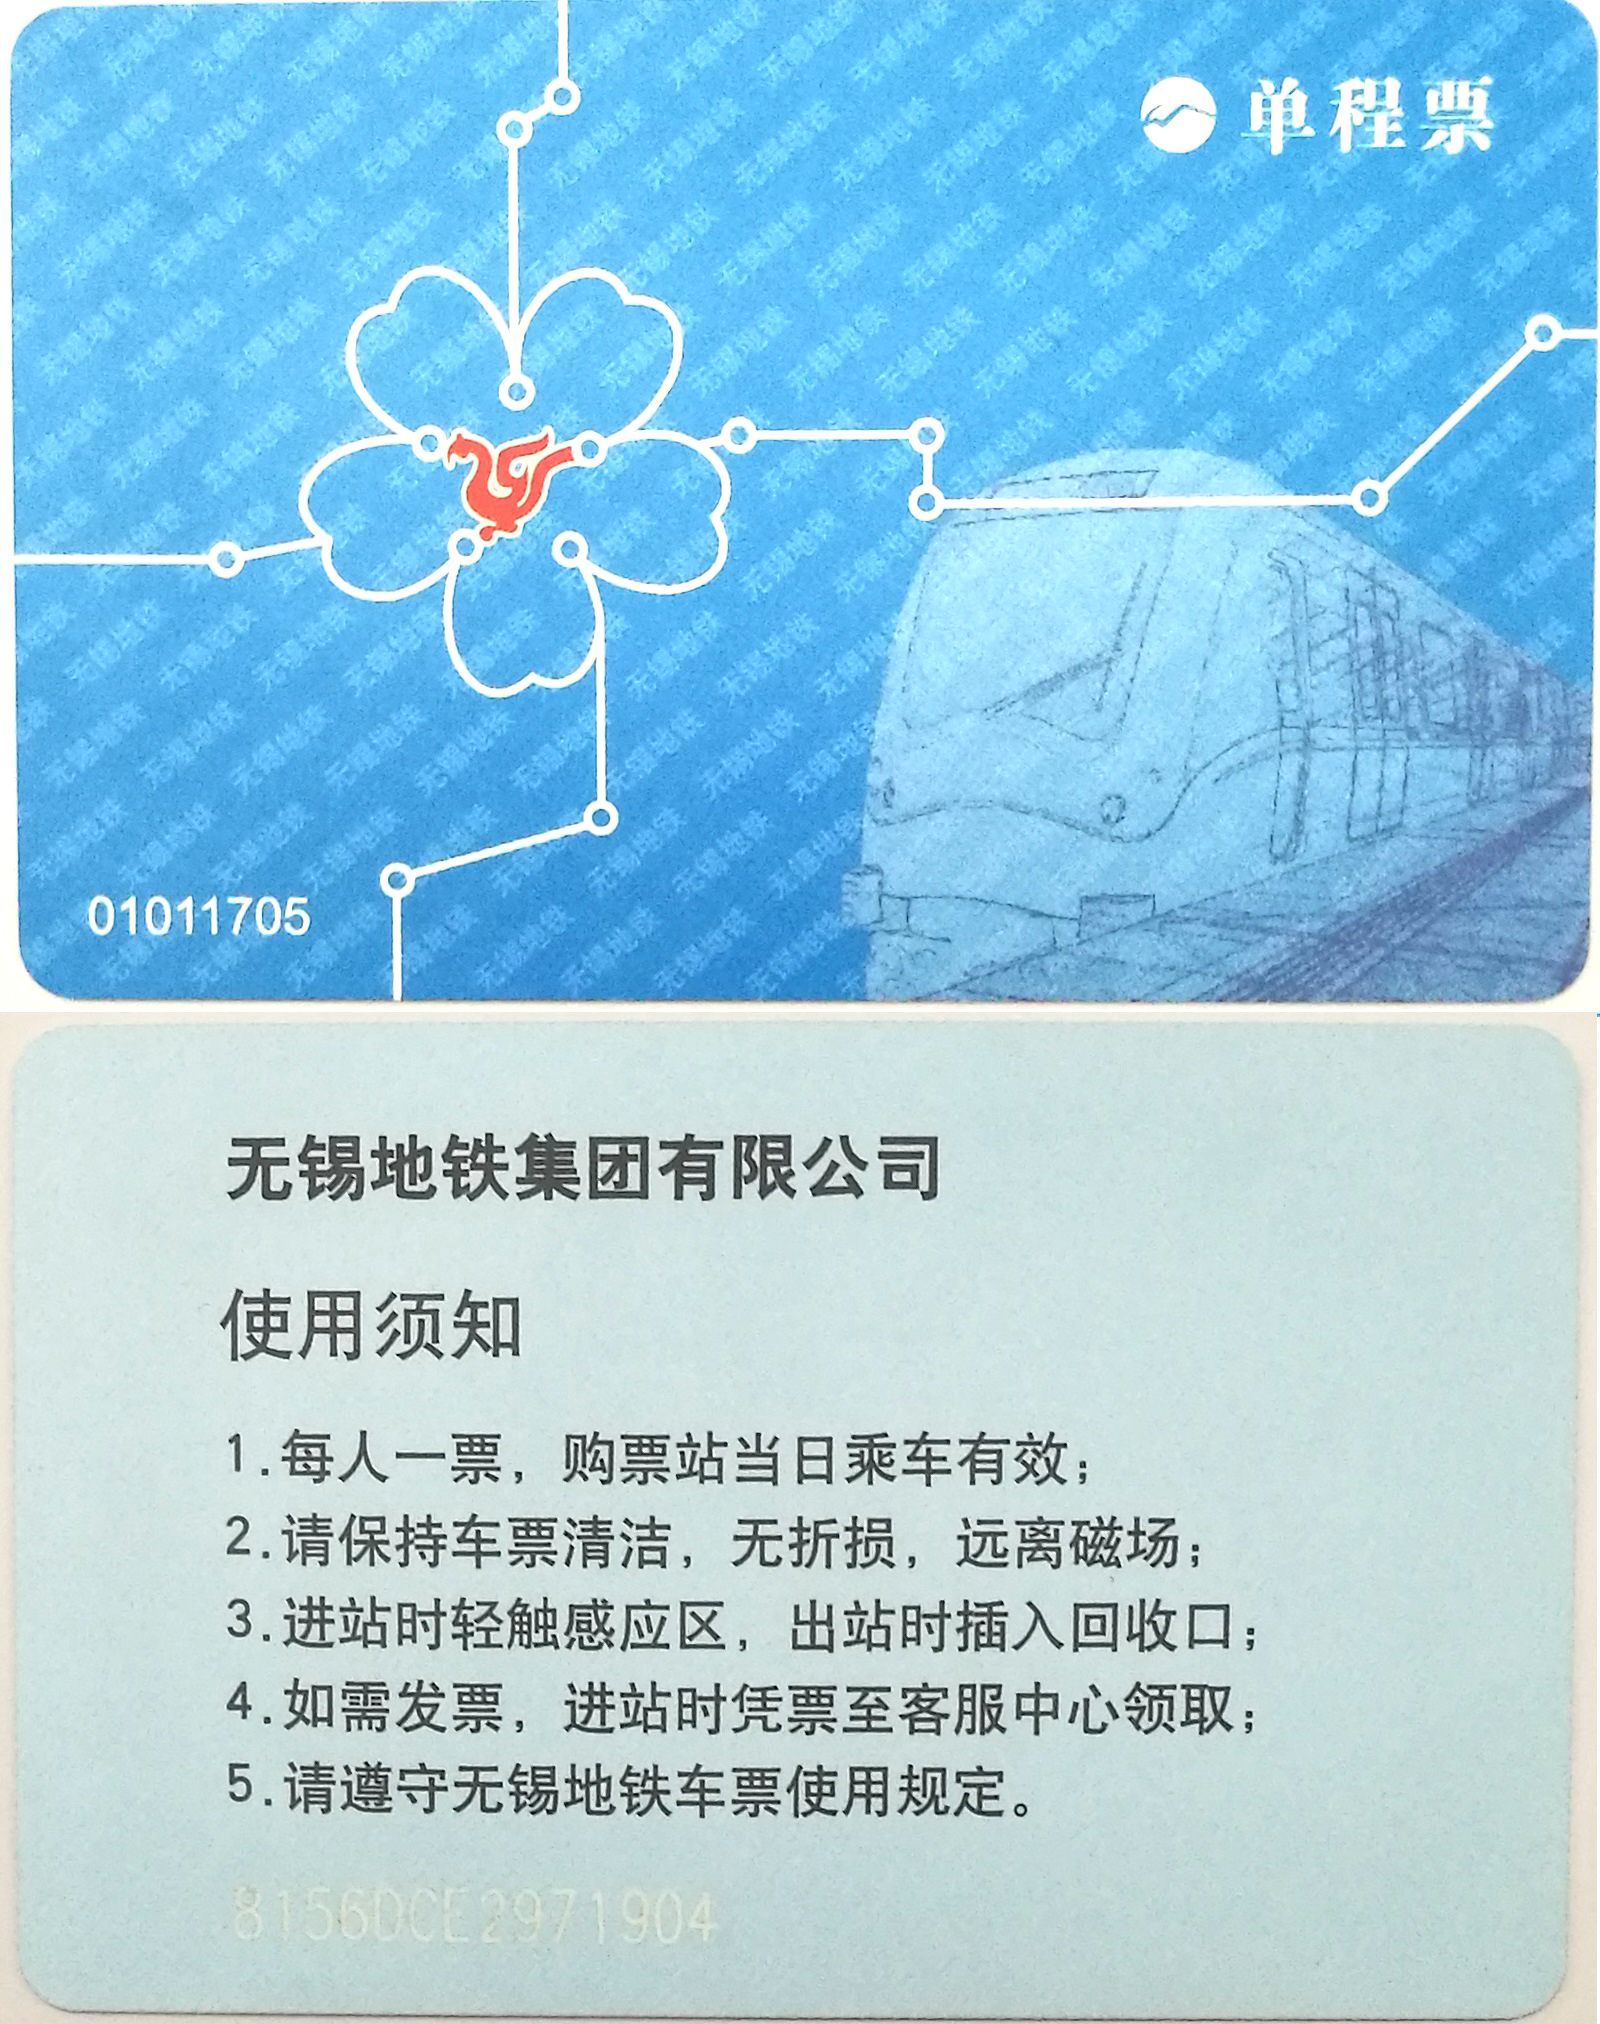 T5275, China Wuxi City, Metro Card (Subway Ticket), One Way 2017, Invalid - Click Image to Close